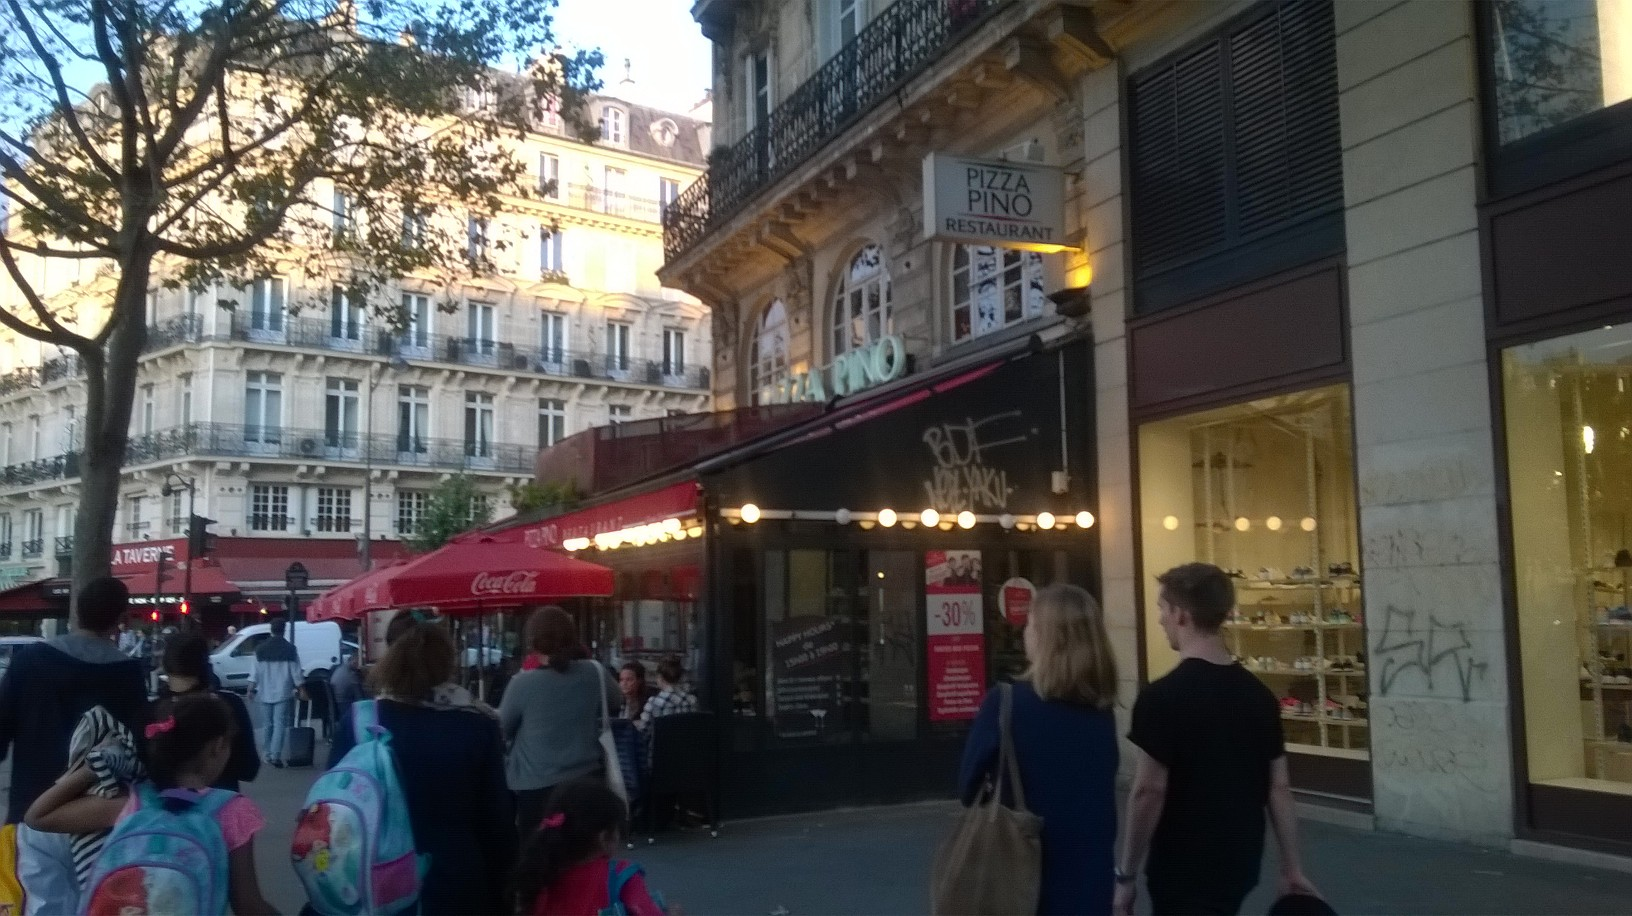 paris-pizza-pino-at-republique-arriving-sep16